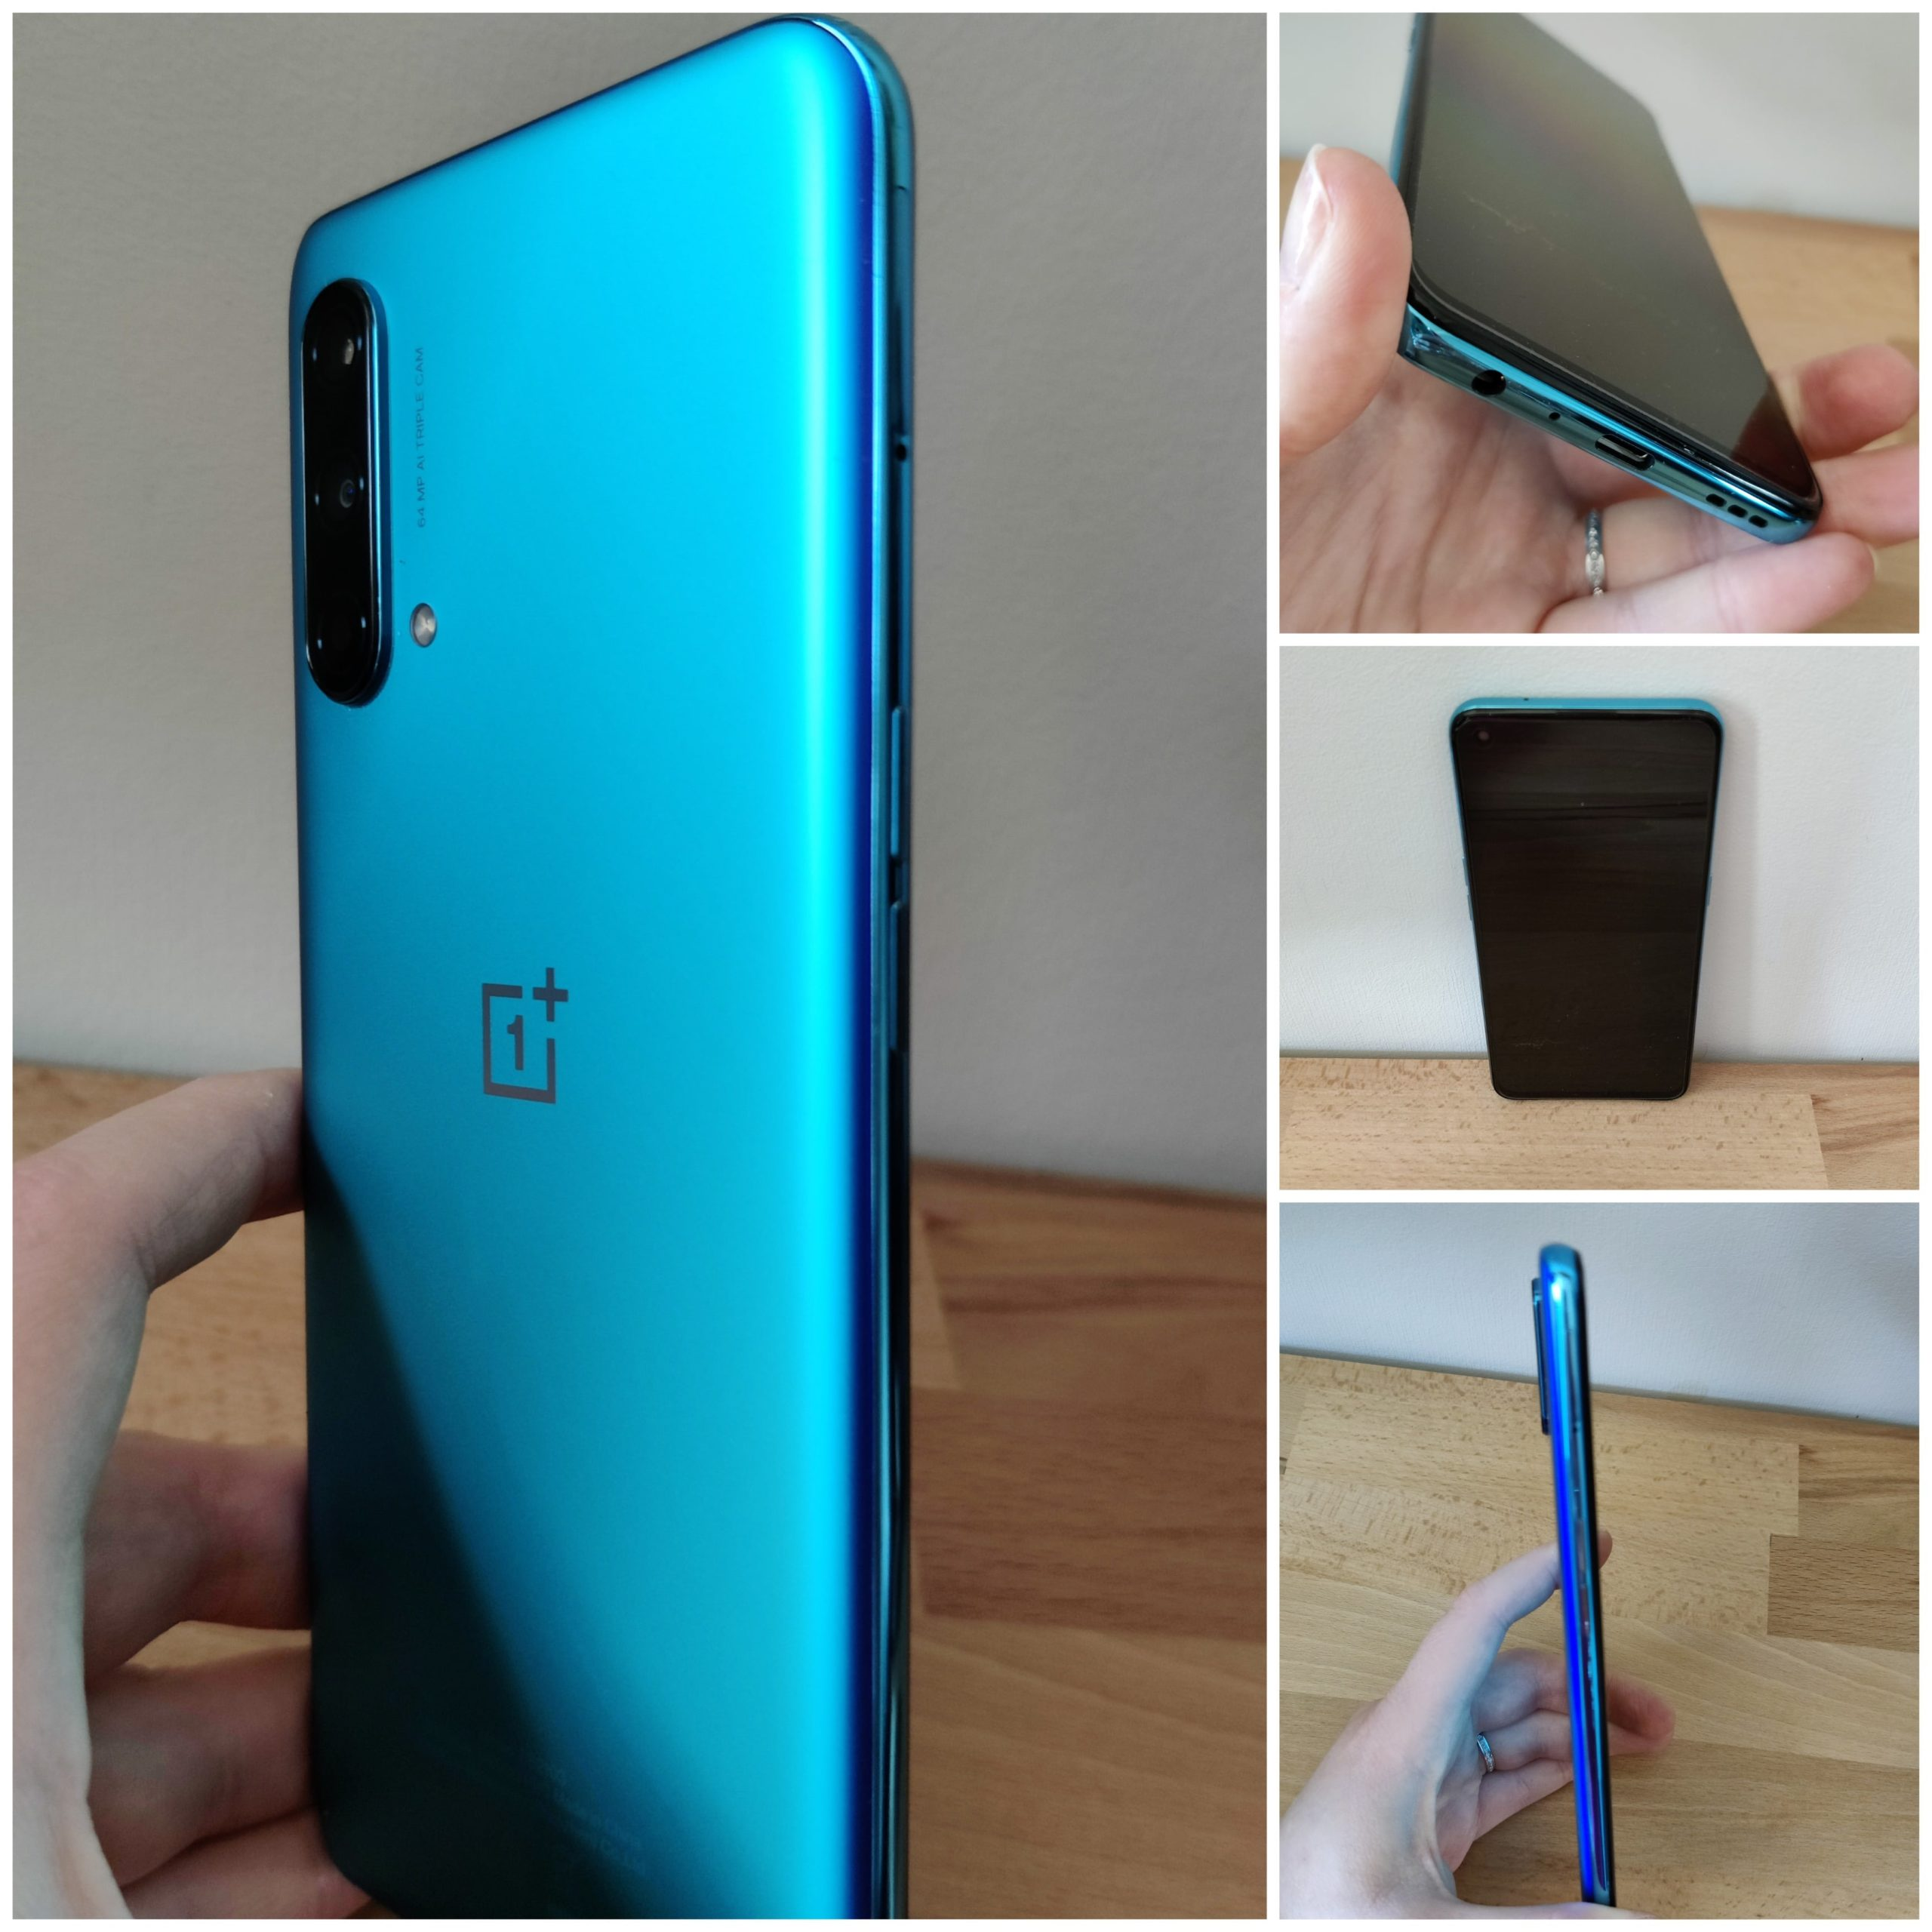 OnePlus Nord CE 5G différents angles